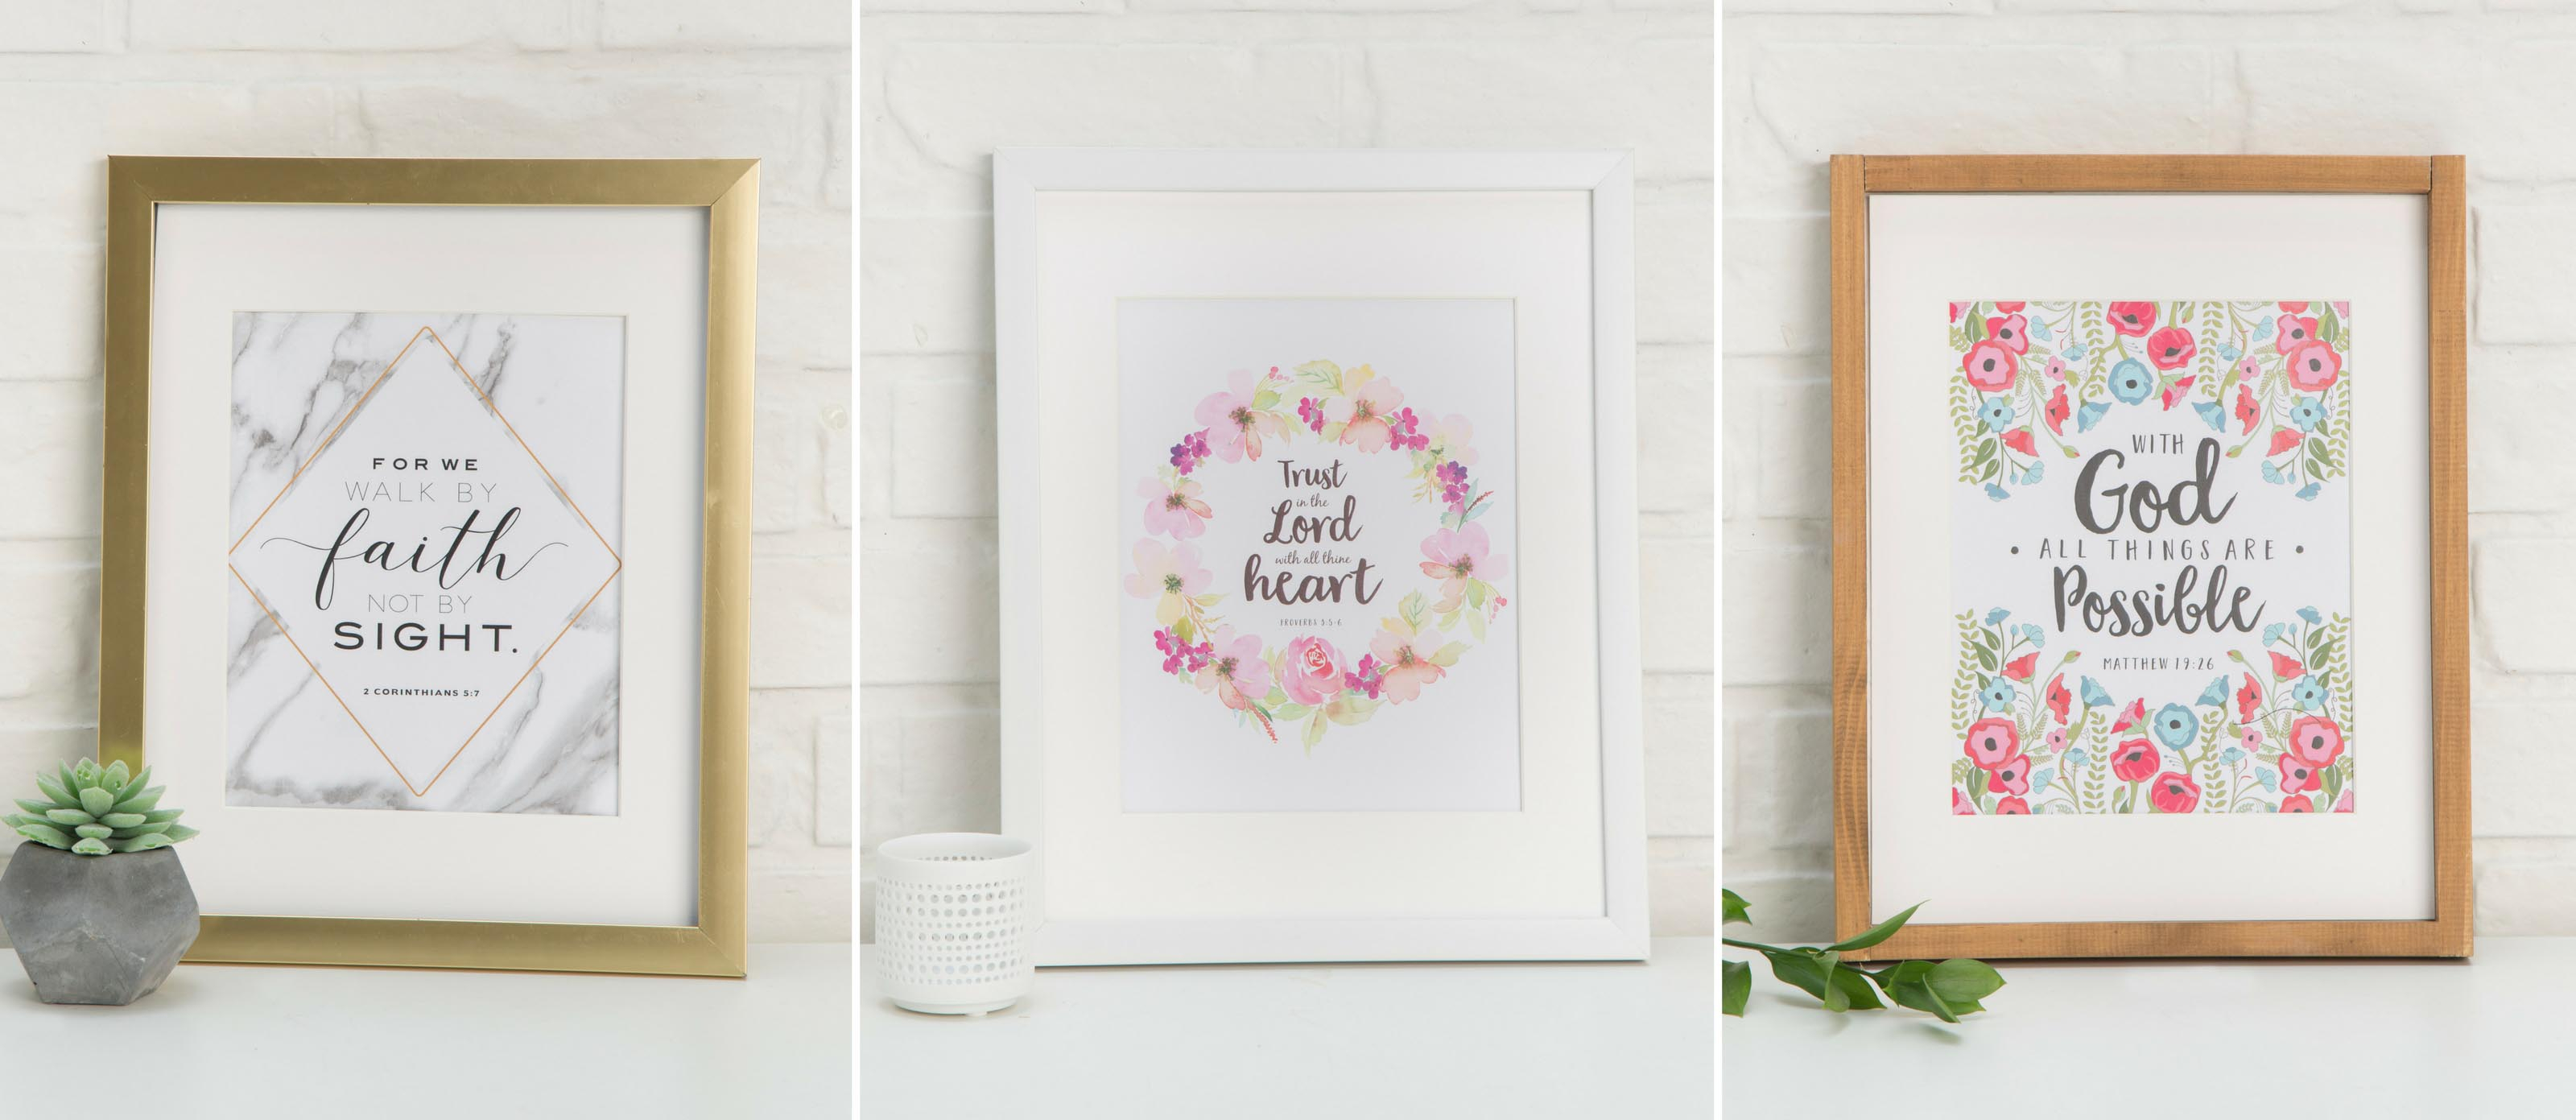 Free Printable Bible Verse Wall Art | Fun365 for Floral Wreath Wood Framed Wall Decor (Image 18 of 30)